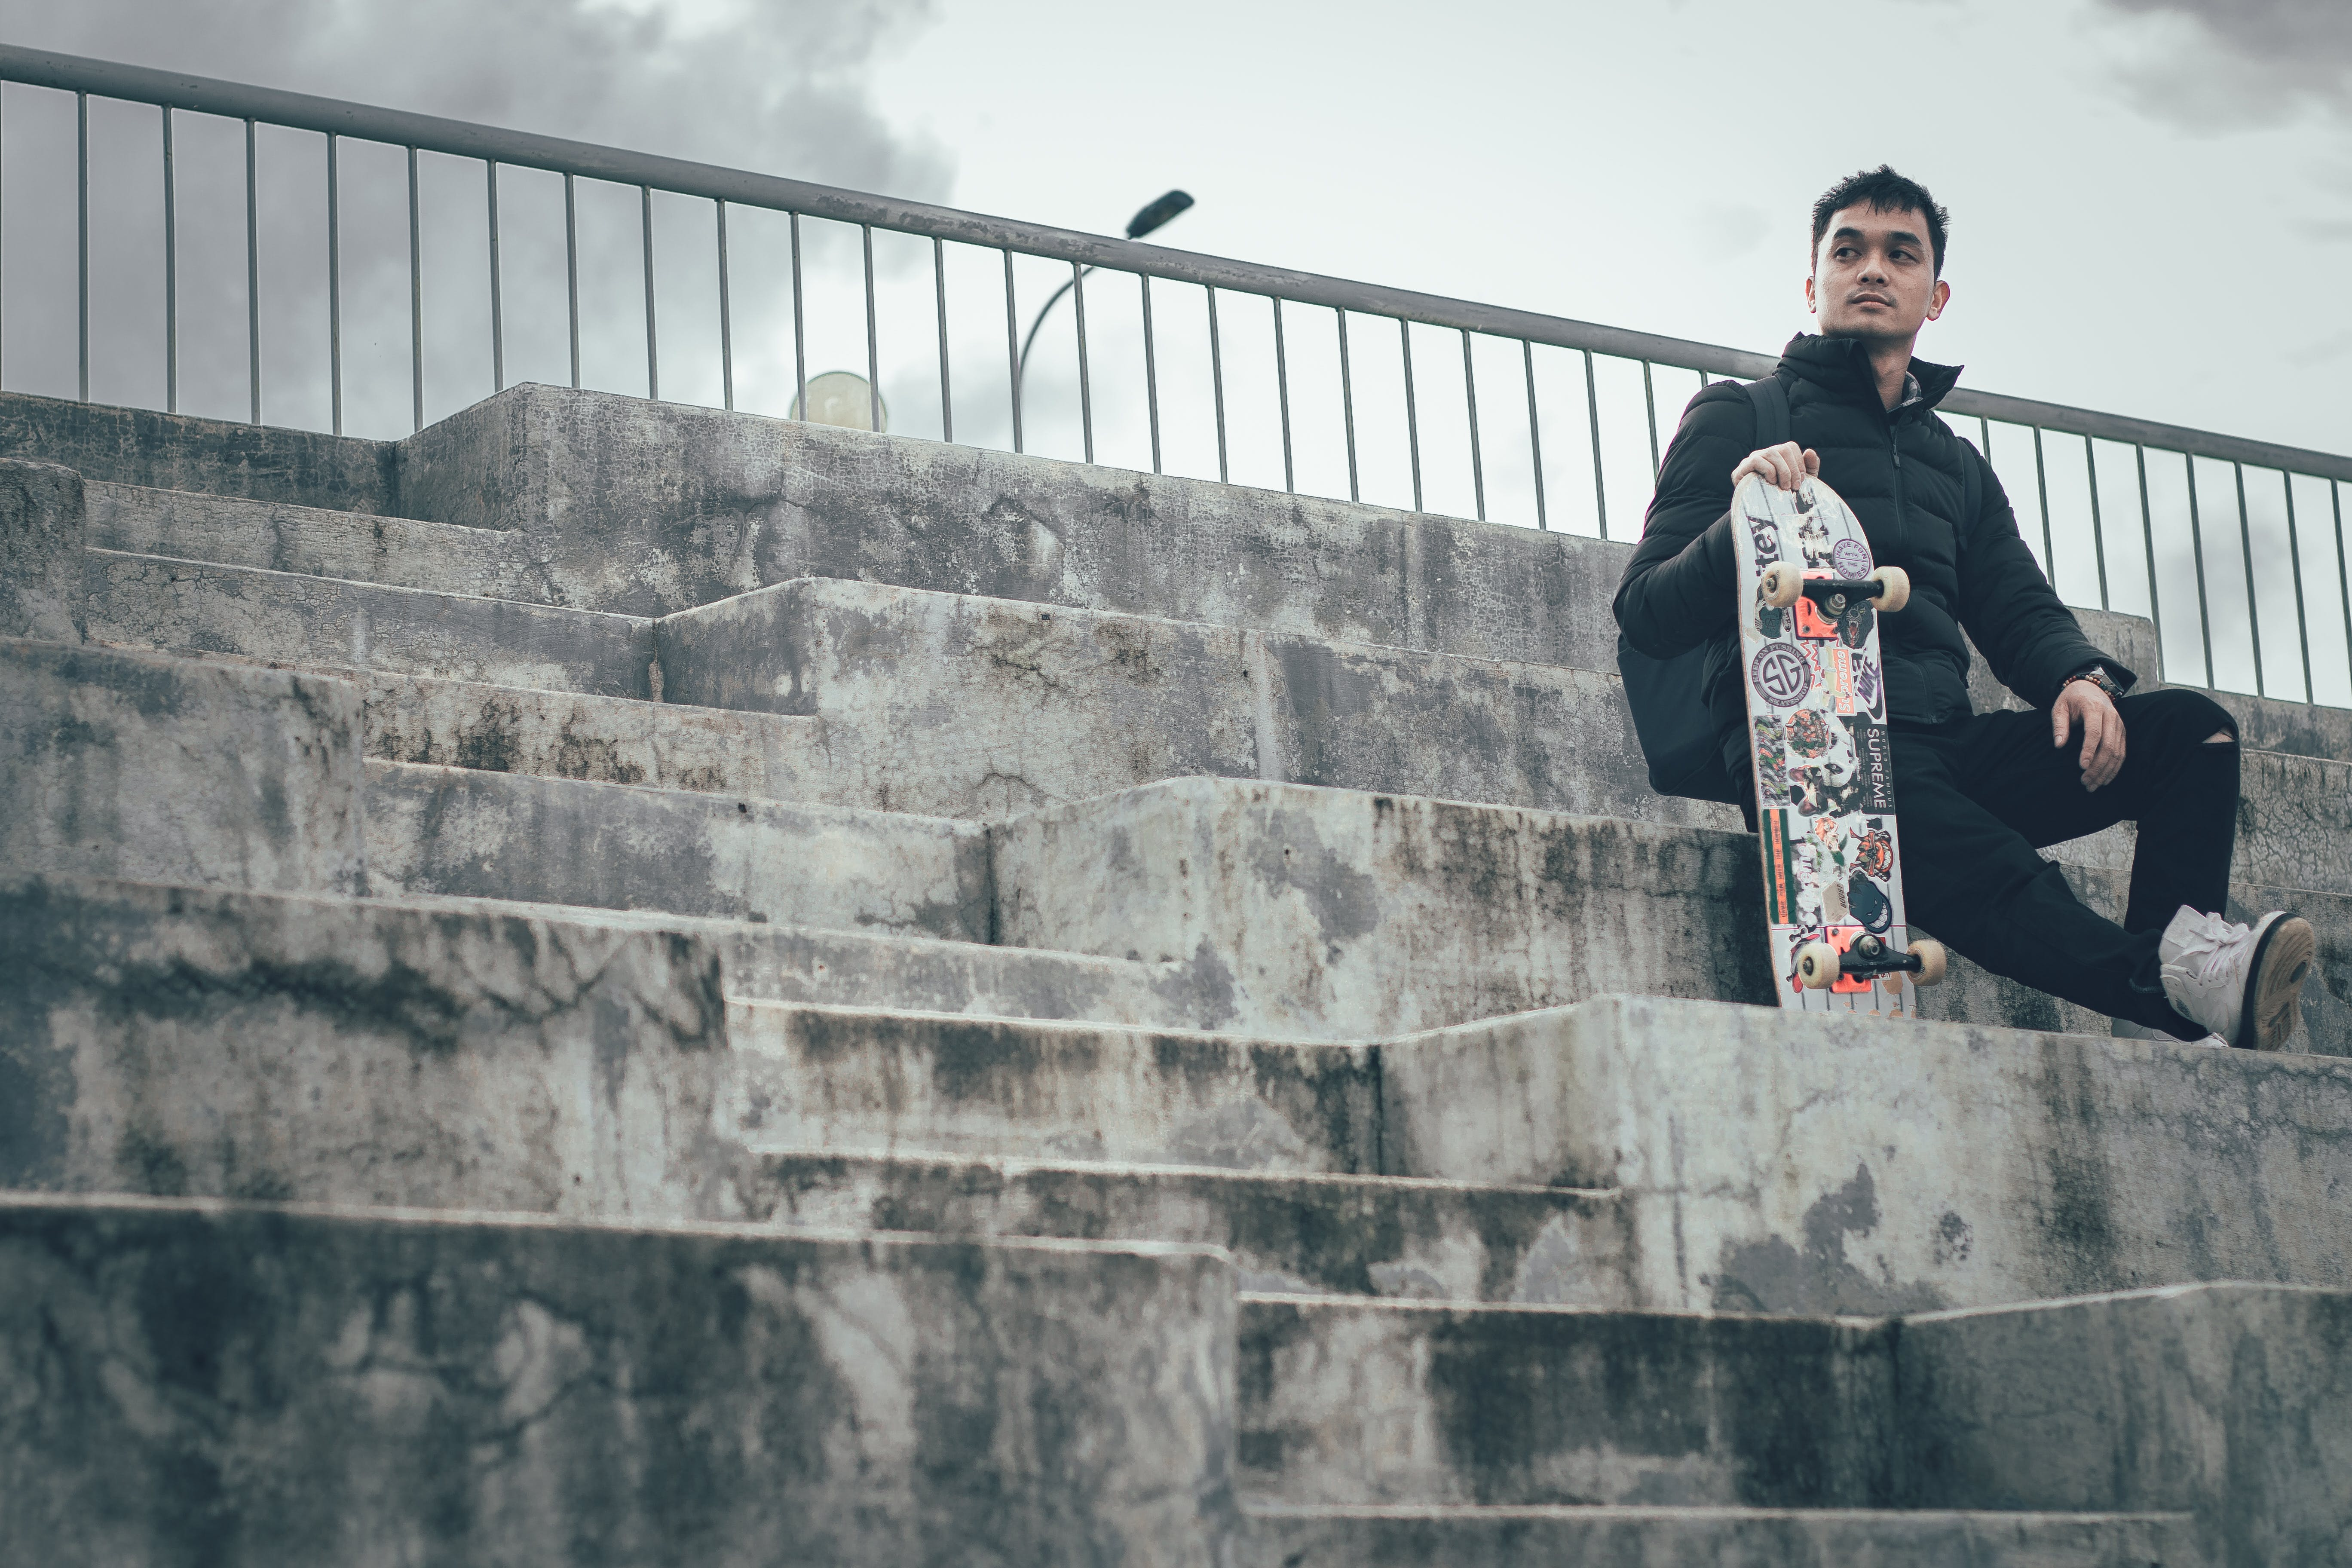 Man Holding Skateboard Sitting On Stairs